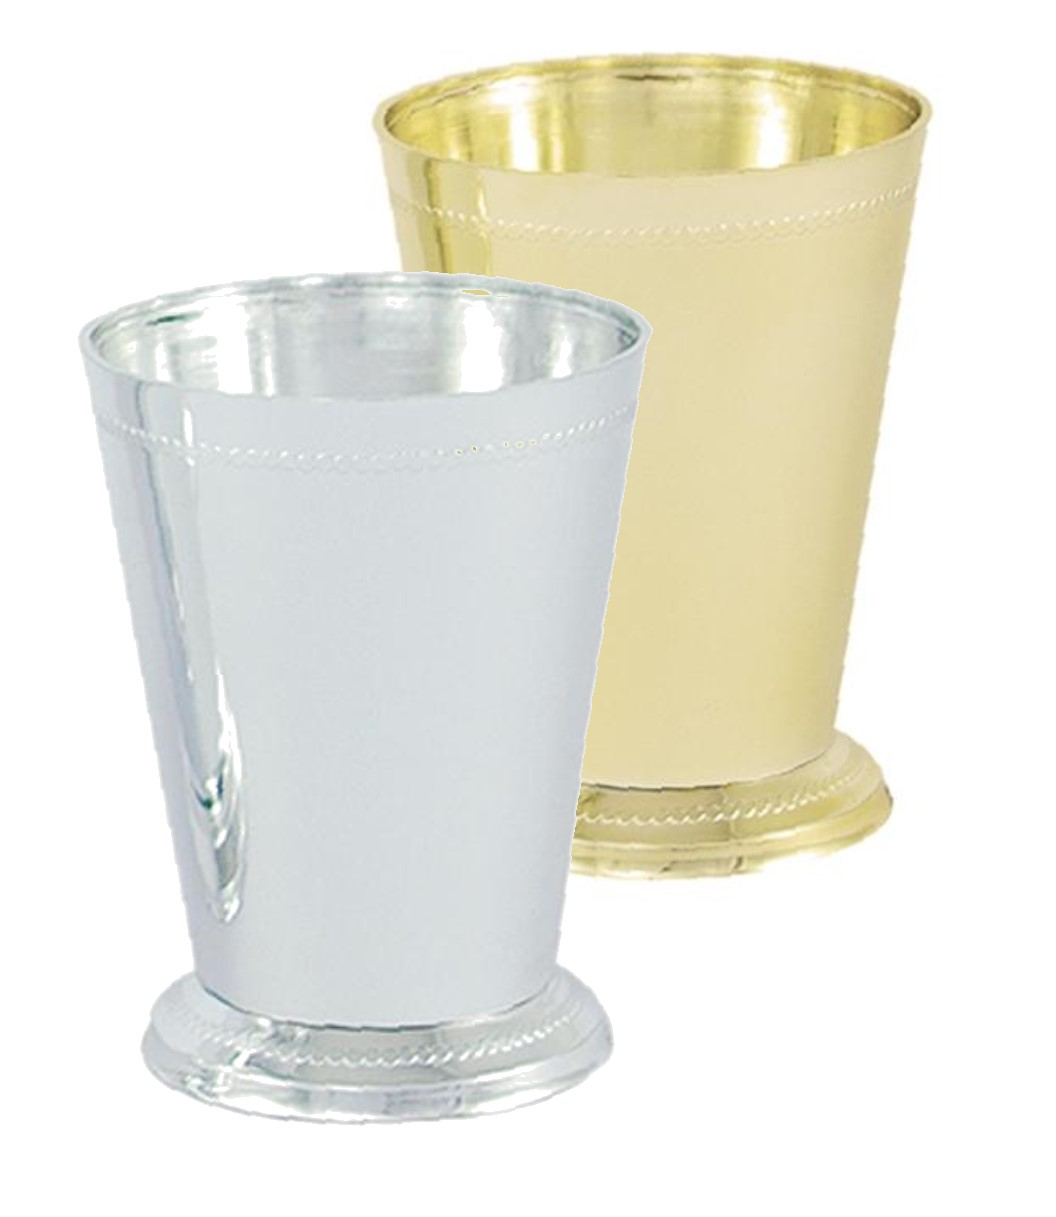 Vo 921 2 Small Plastic Mint Julep Cup Gold Or Silver